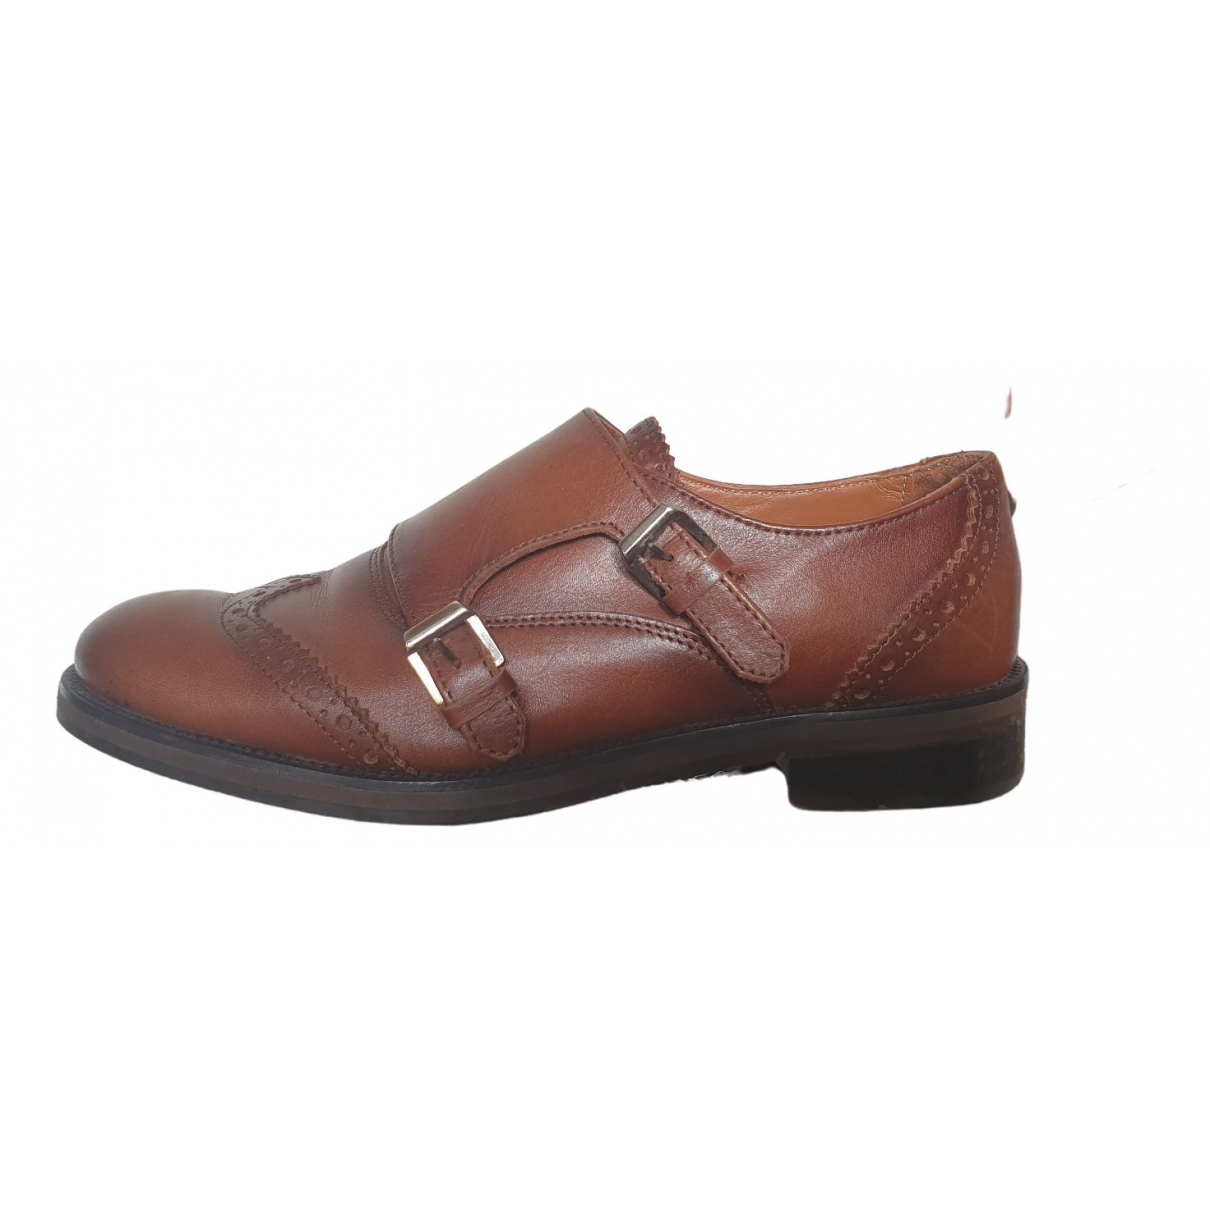 Massimo Dutti \N Brown Leather Mules & Clogs for Women 39 EU